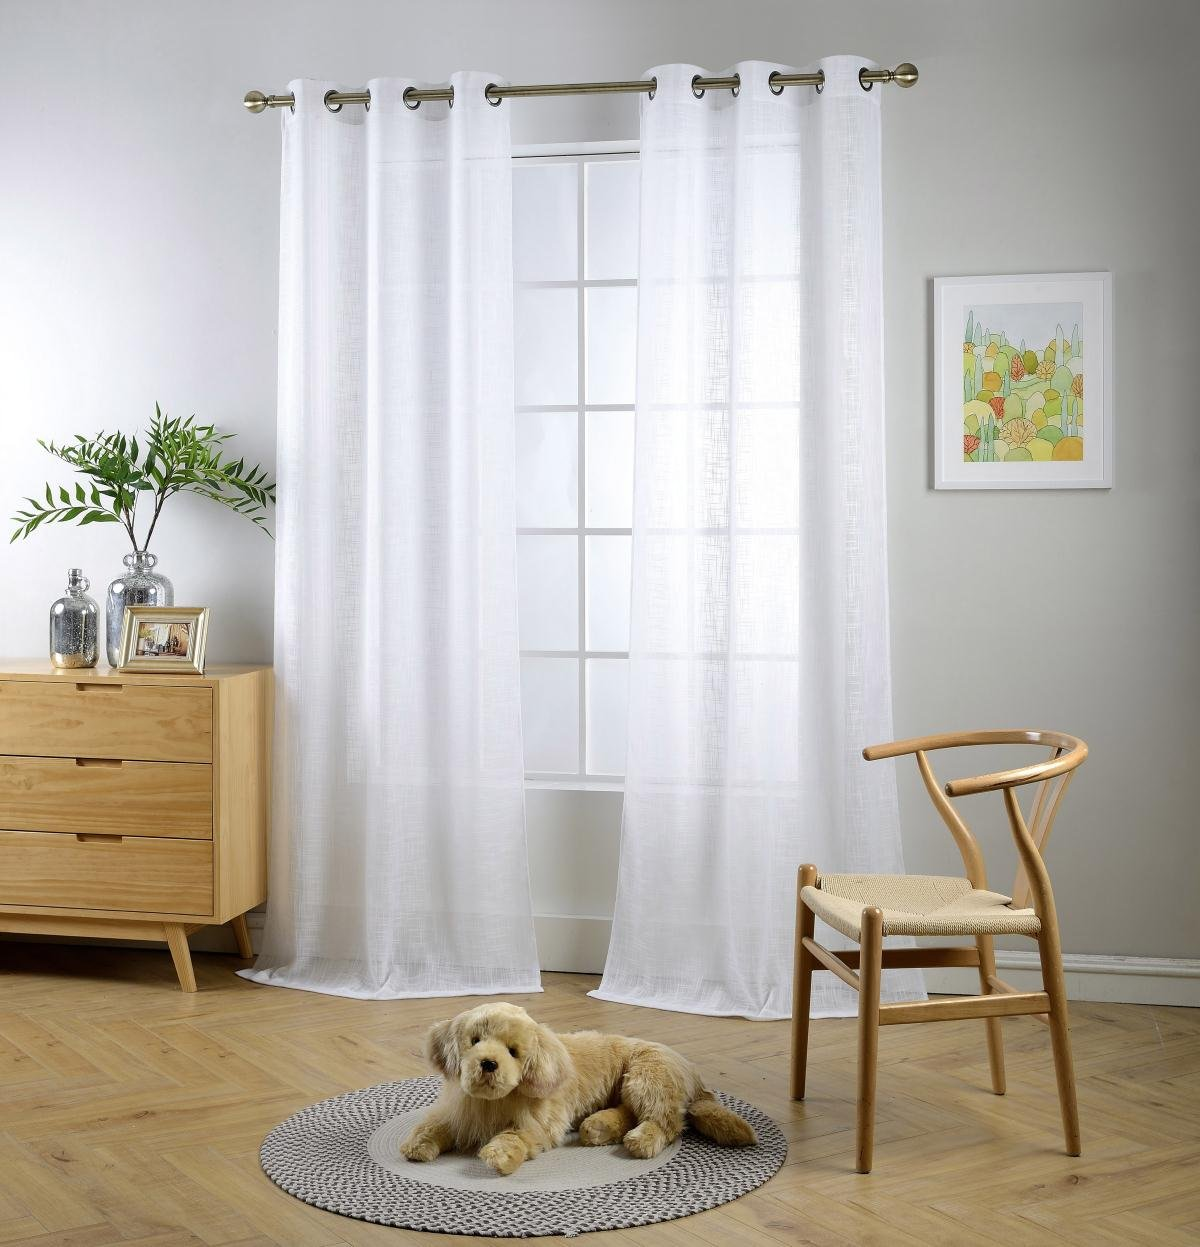 Amazoncom Miuco White Sheer Curtains Poly Linen Textured Solid